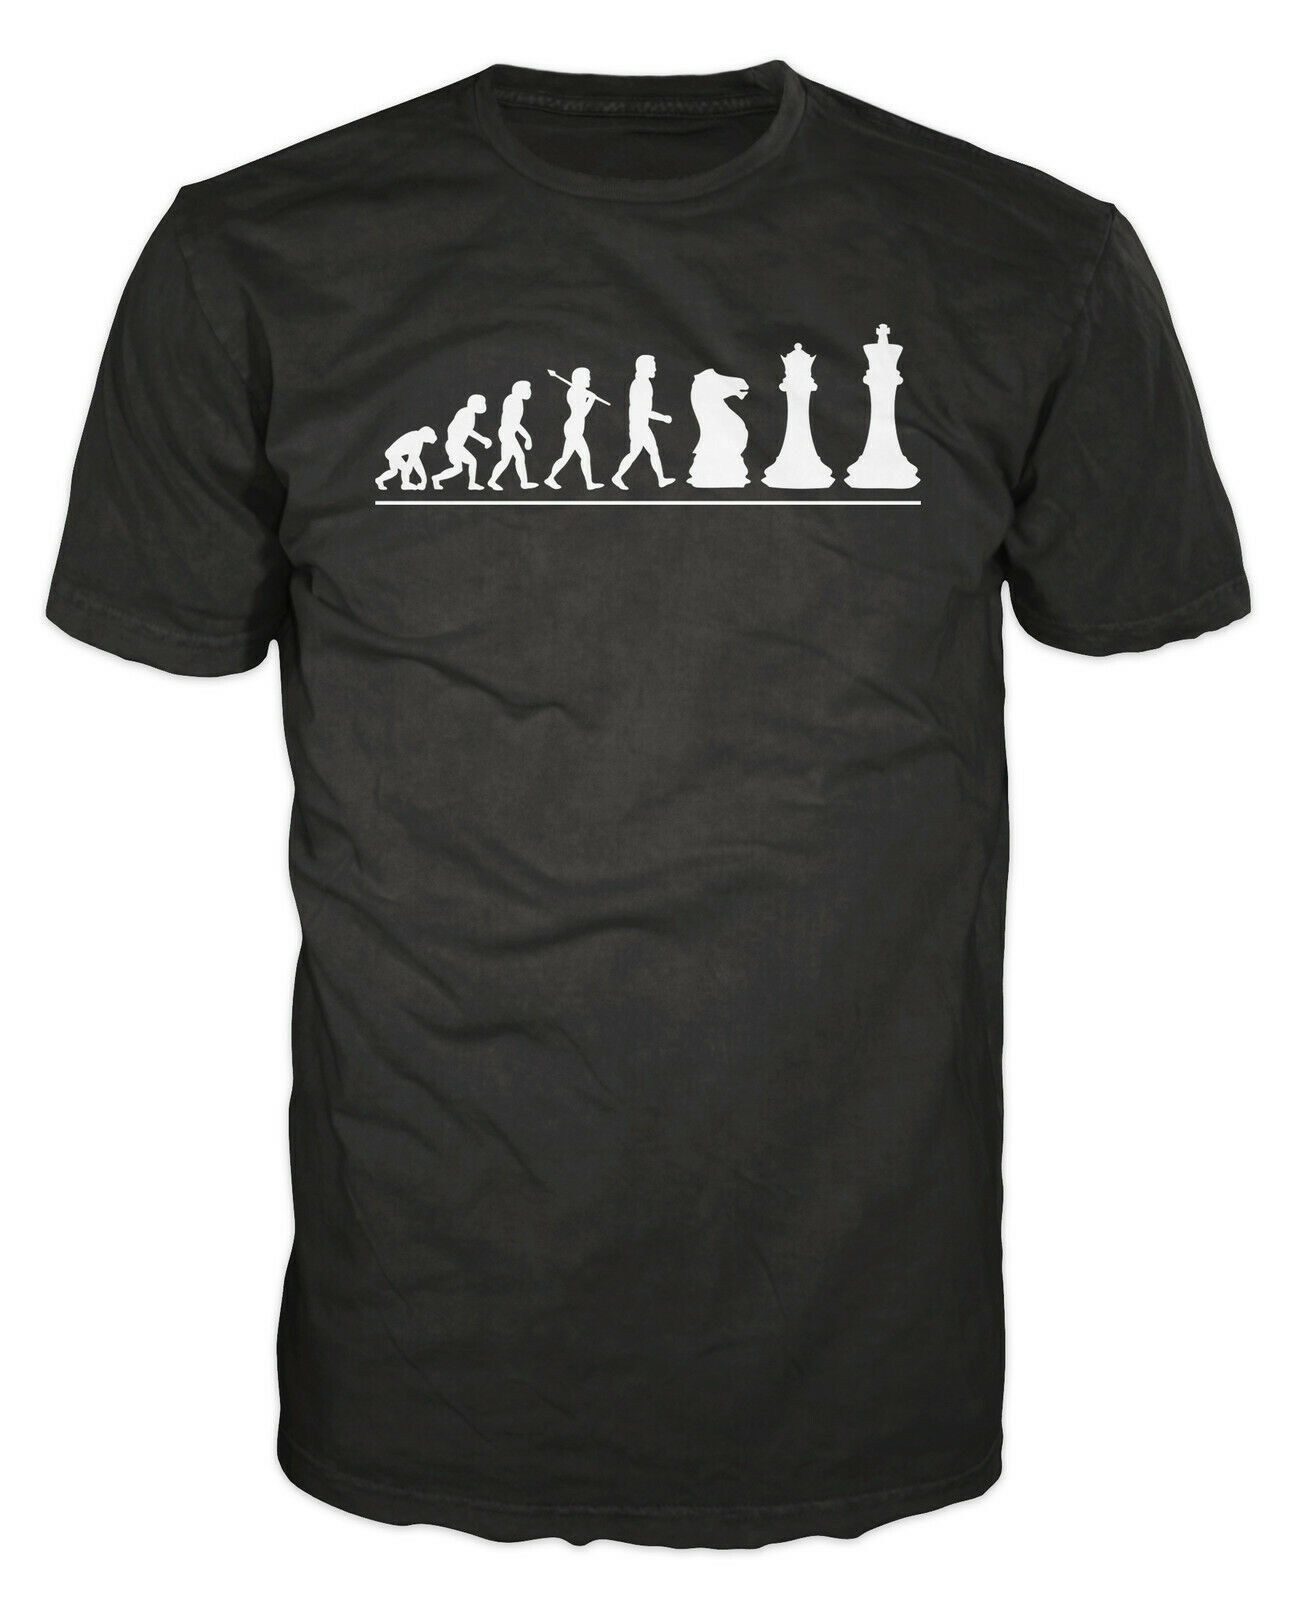 Chess Player Evolution Funny Mind Board Game Smart Moves T-shirt image